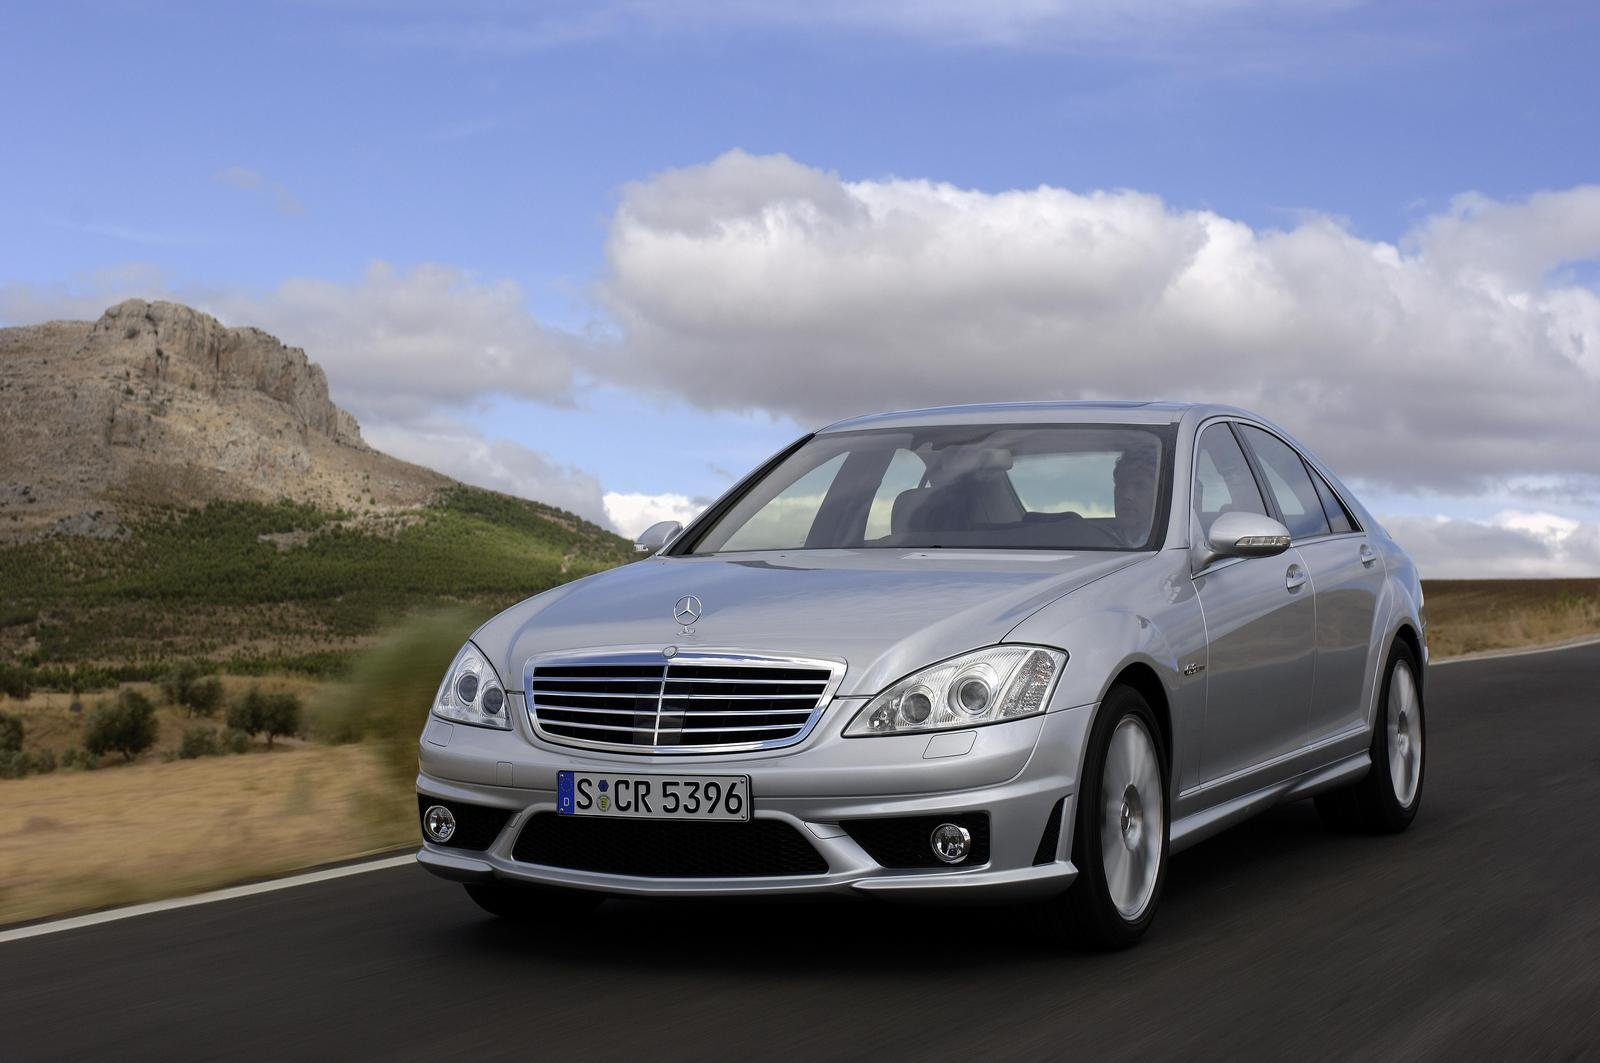 2007 mercedes s63 amg review top speed. Black Bedroom Furniture Sets. Home Design Ideas